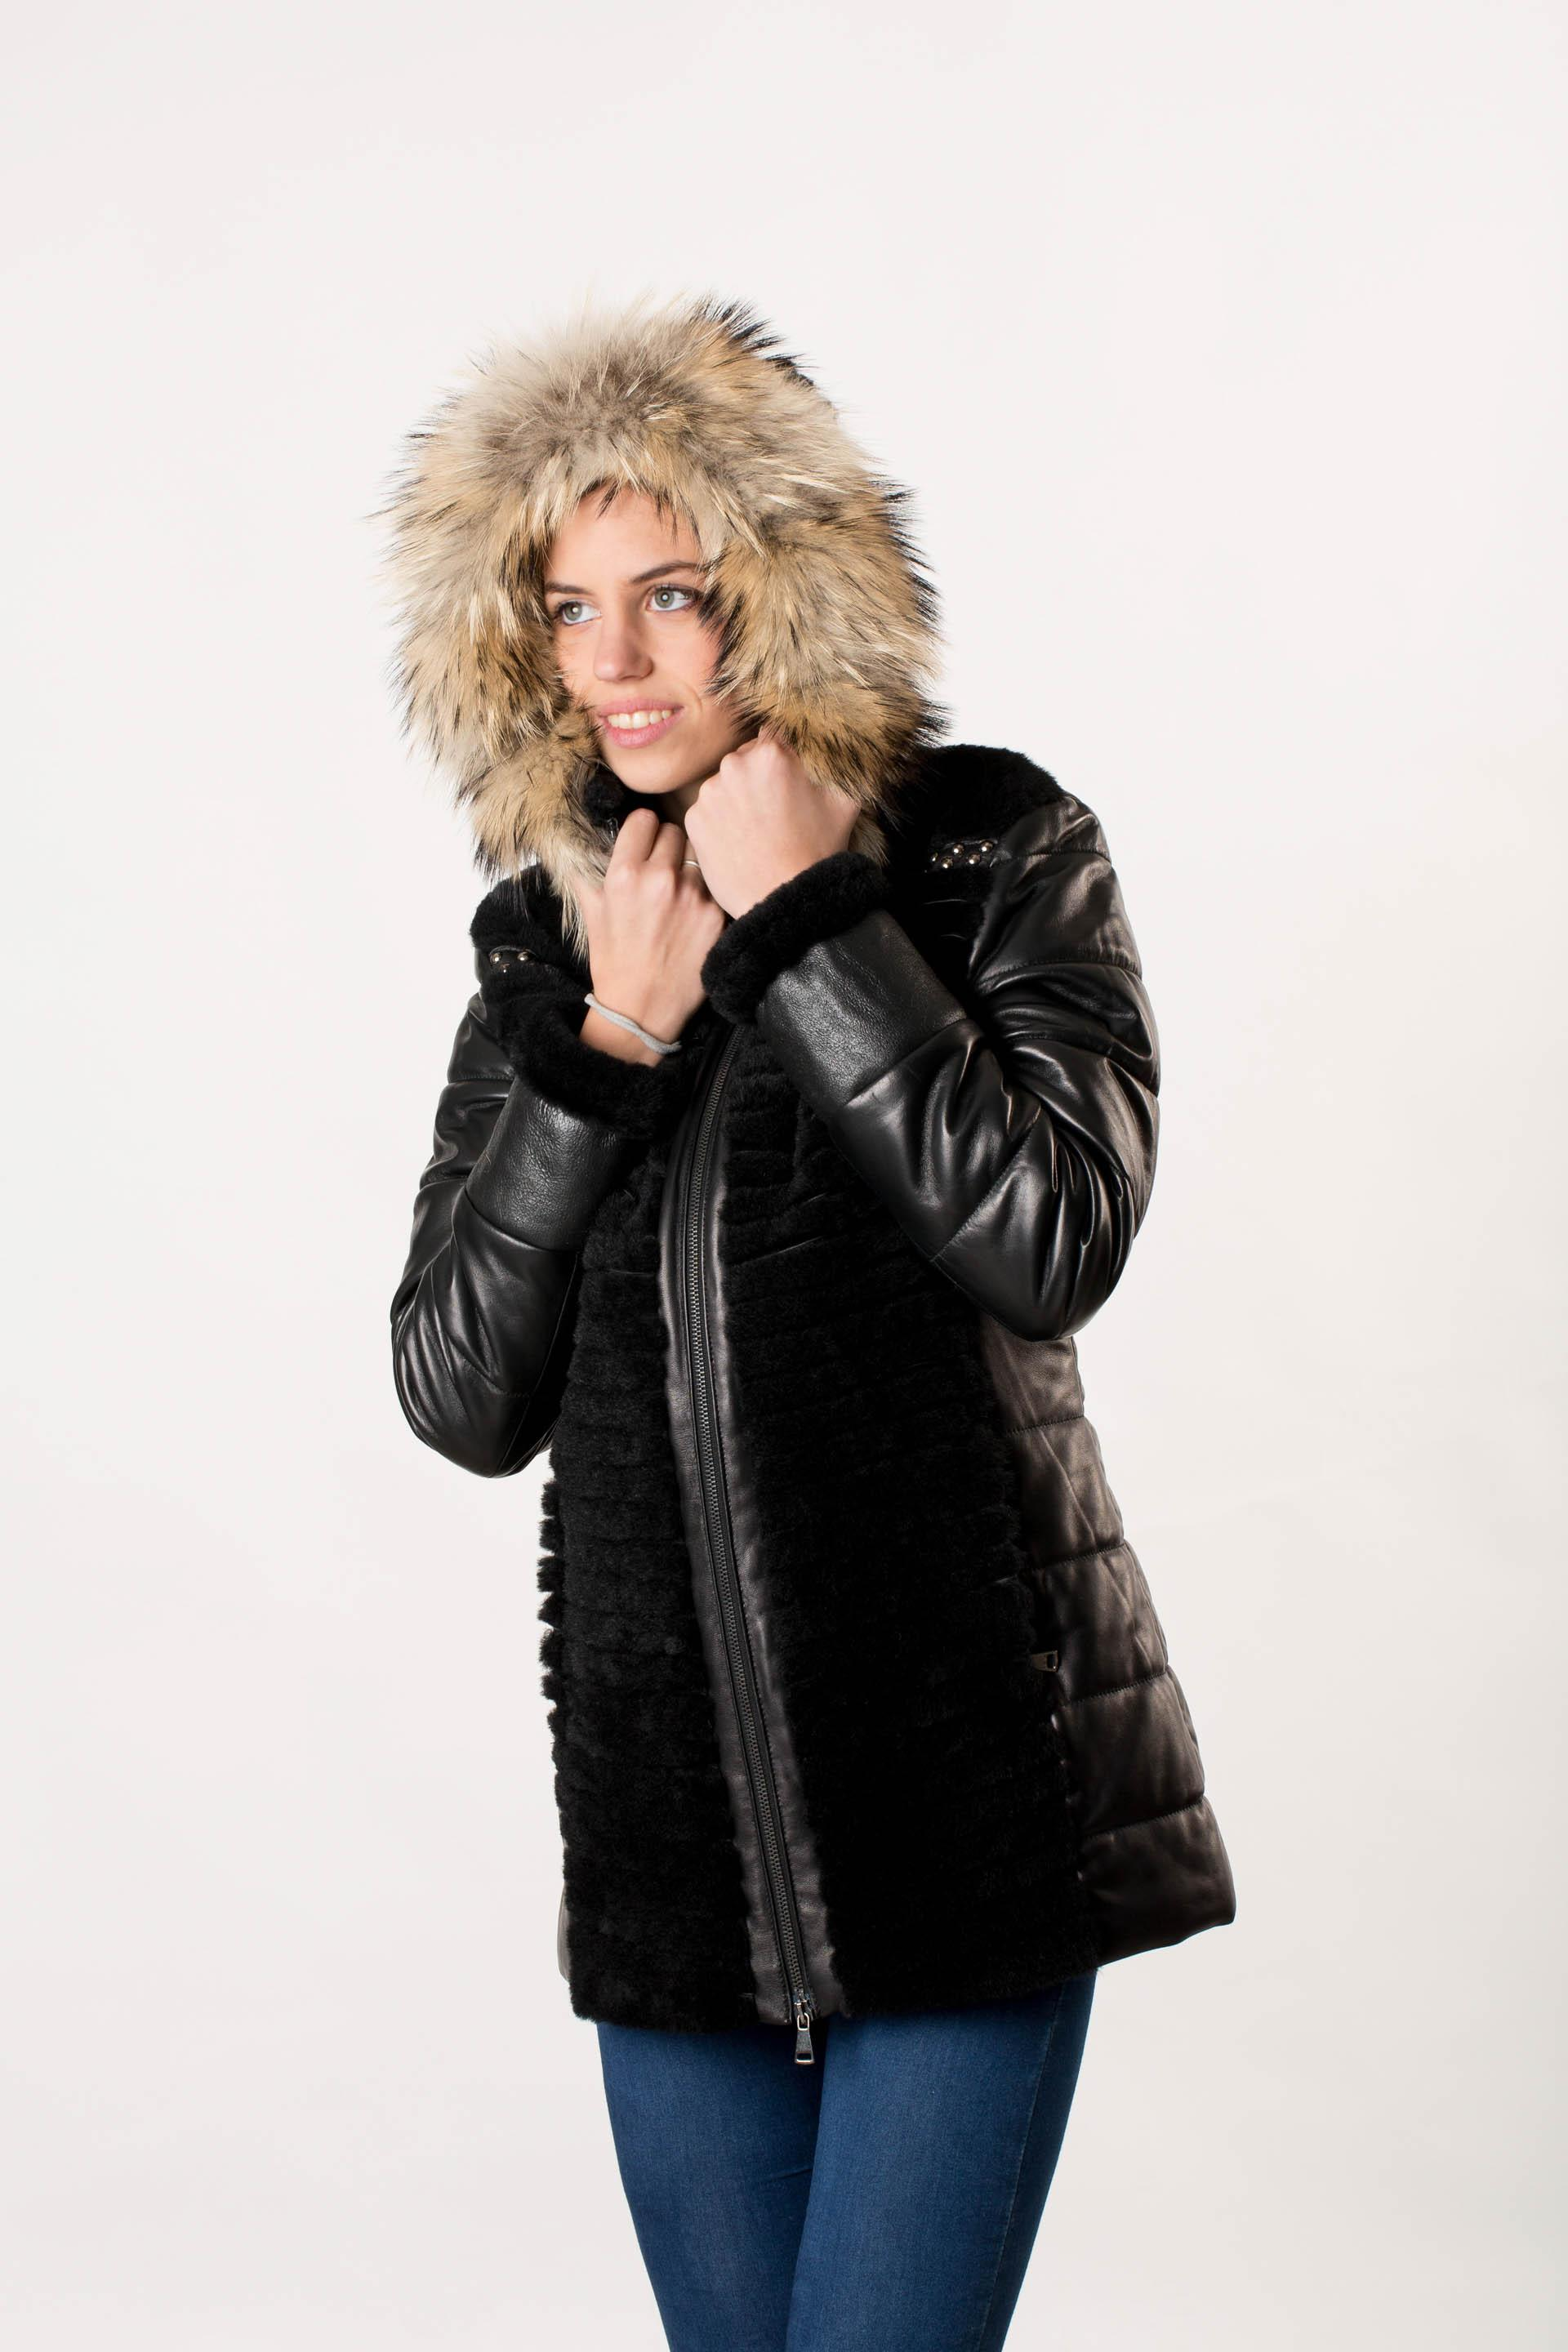 Parka for women black mutton shearling coat  747780e4ee04